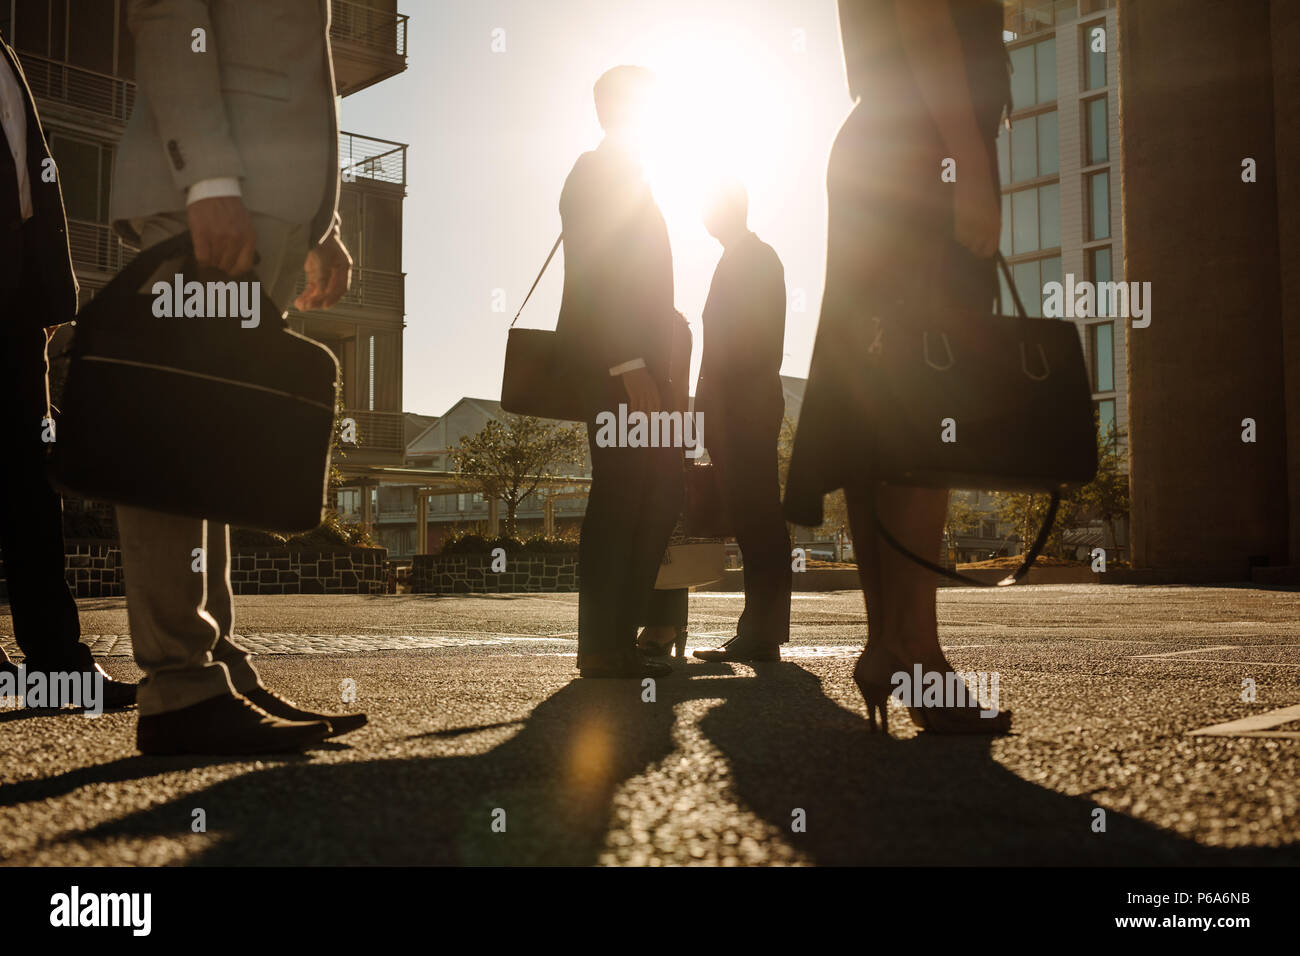 Men and woman in formal clothes commuting to office in the morning carrying office bags. Office going people standing on a busy street with sun flare  - Stock Image